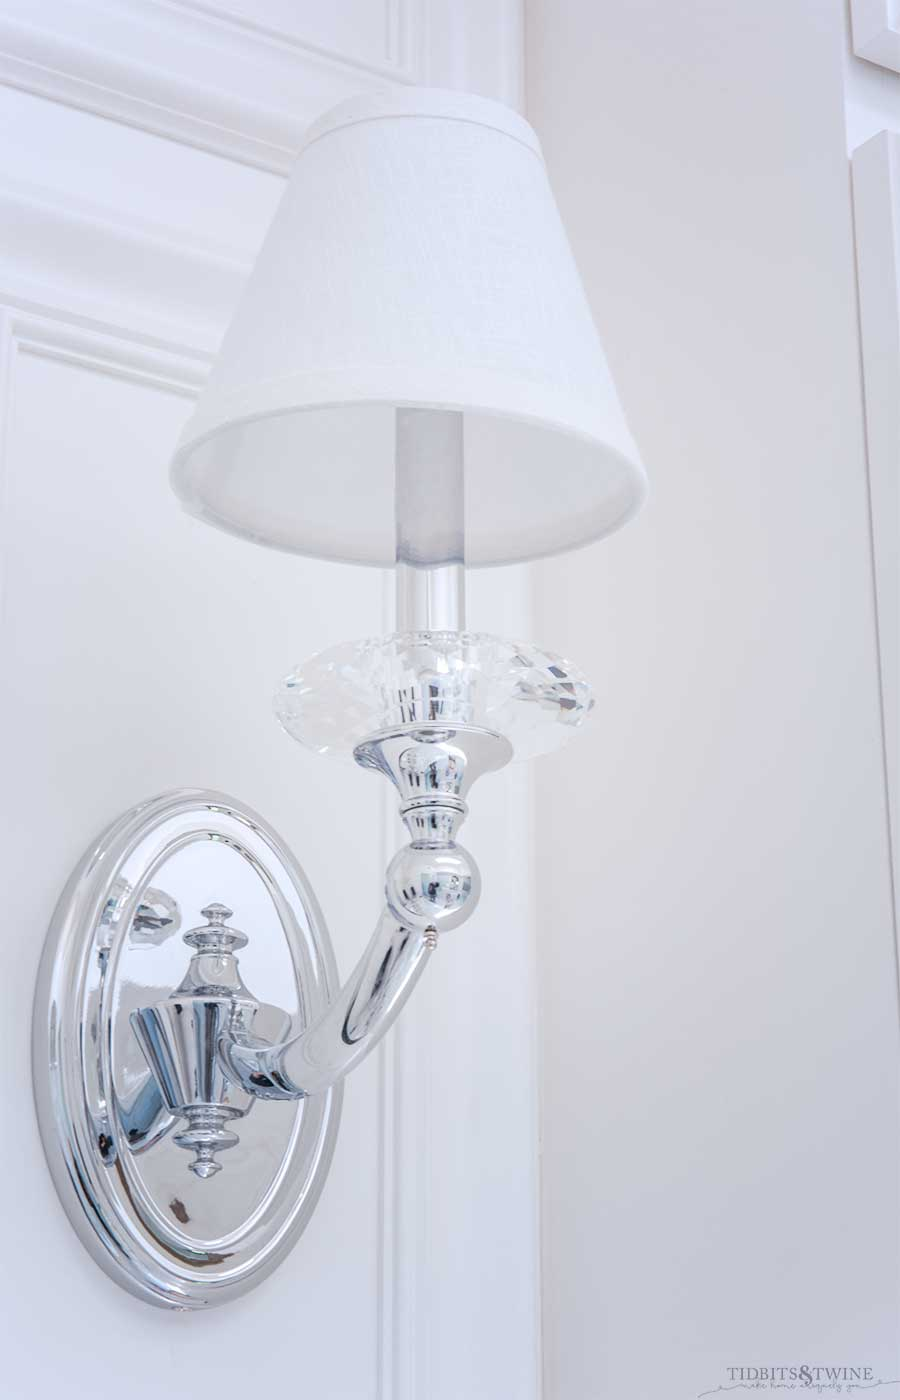 Allegri Floridia one light sconce in French elegant master bathroom